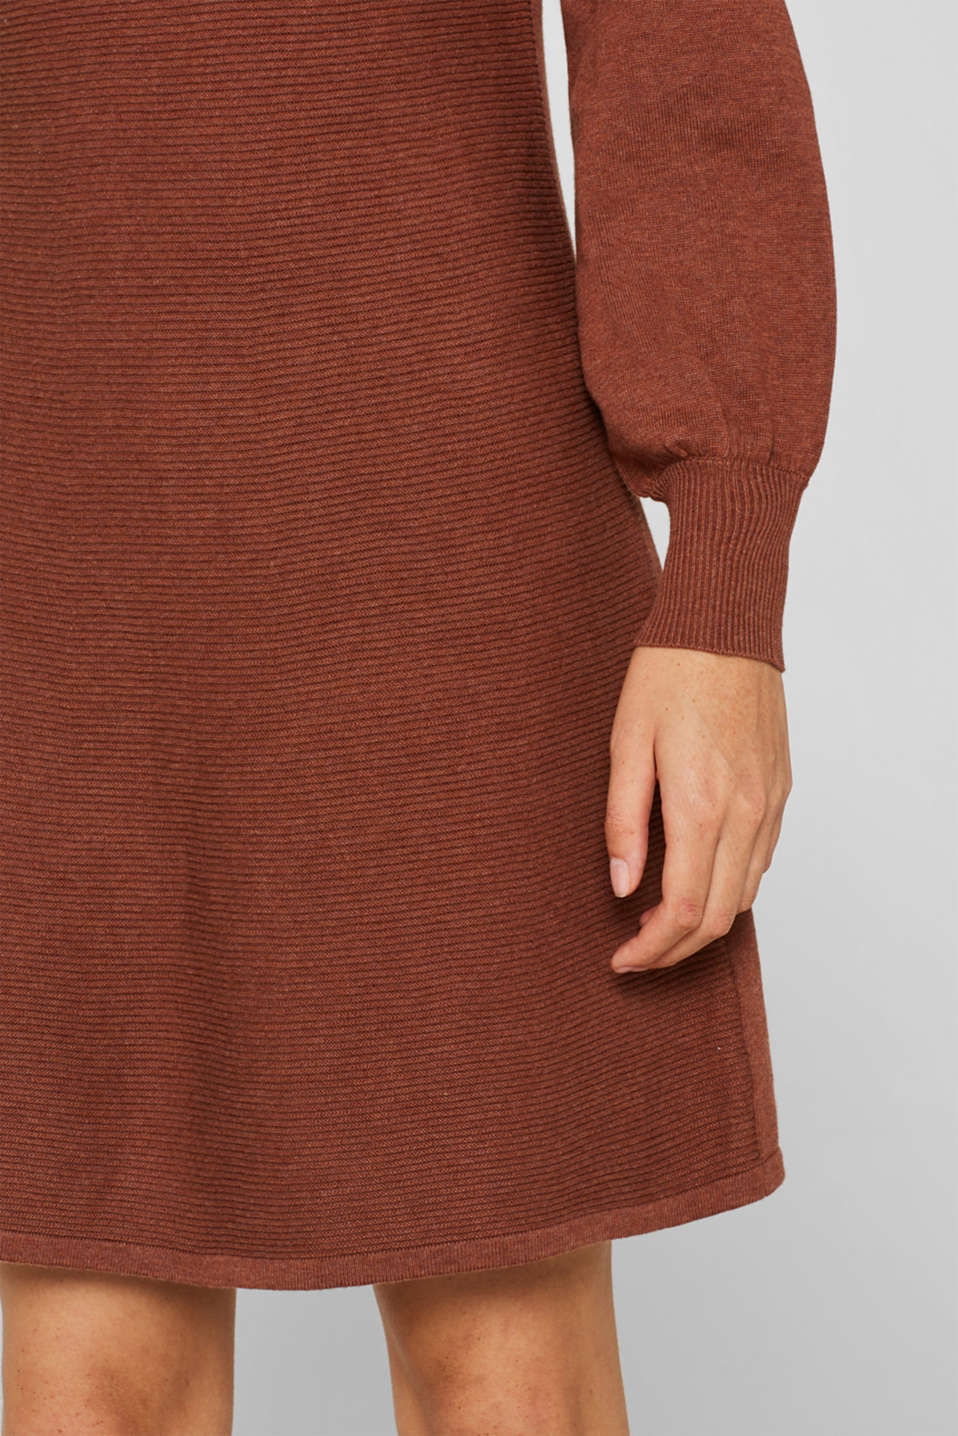 Knitted dress with balloon sleeves, 100% cotton, RUST BROWN 5, detail image number 3